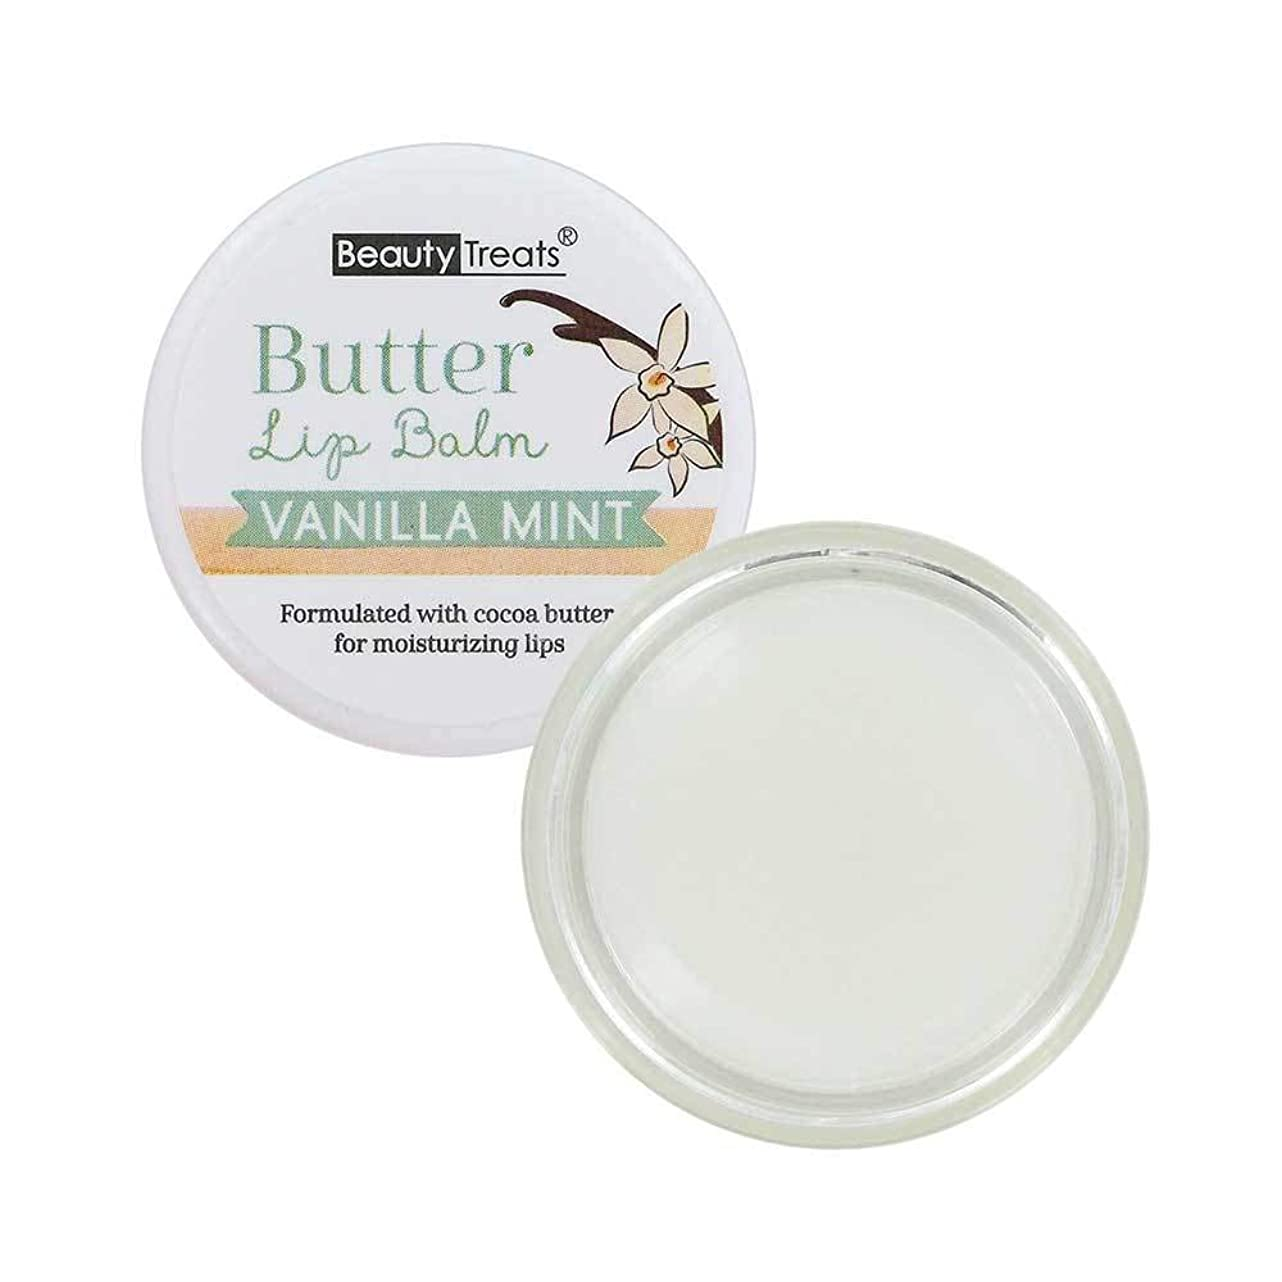 (3 Pack) BEAUTY TREATS Butter Lip Balm - Vanilla Mint (並行輸入品)